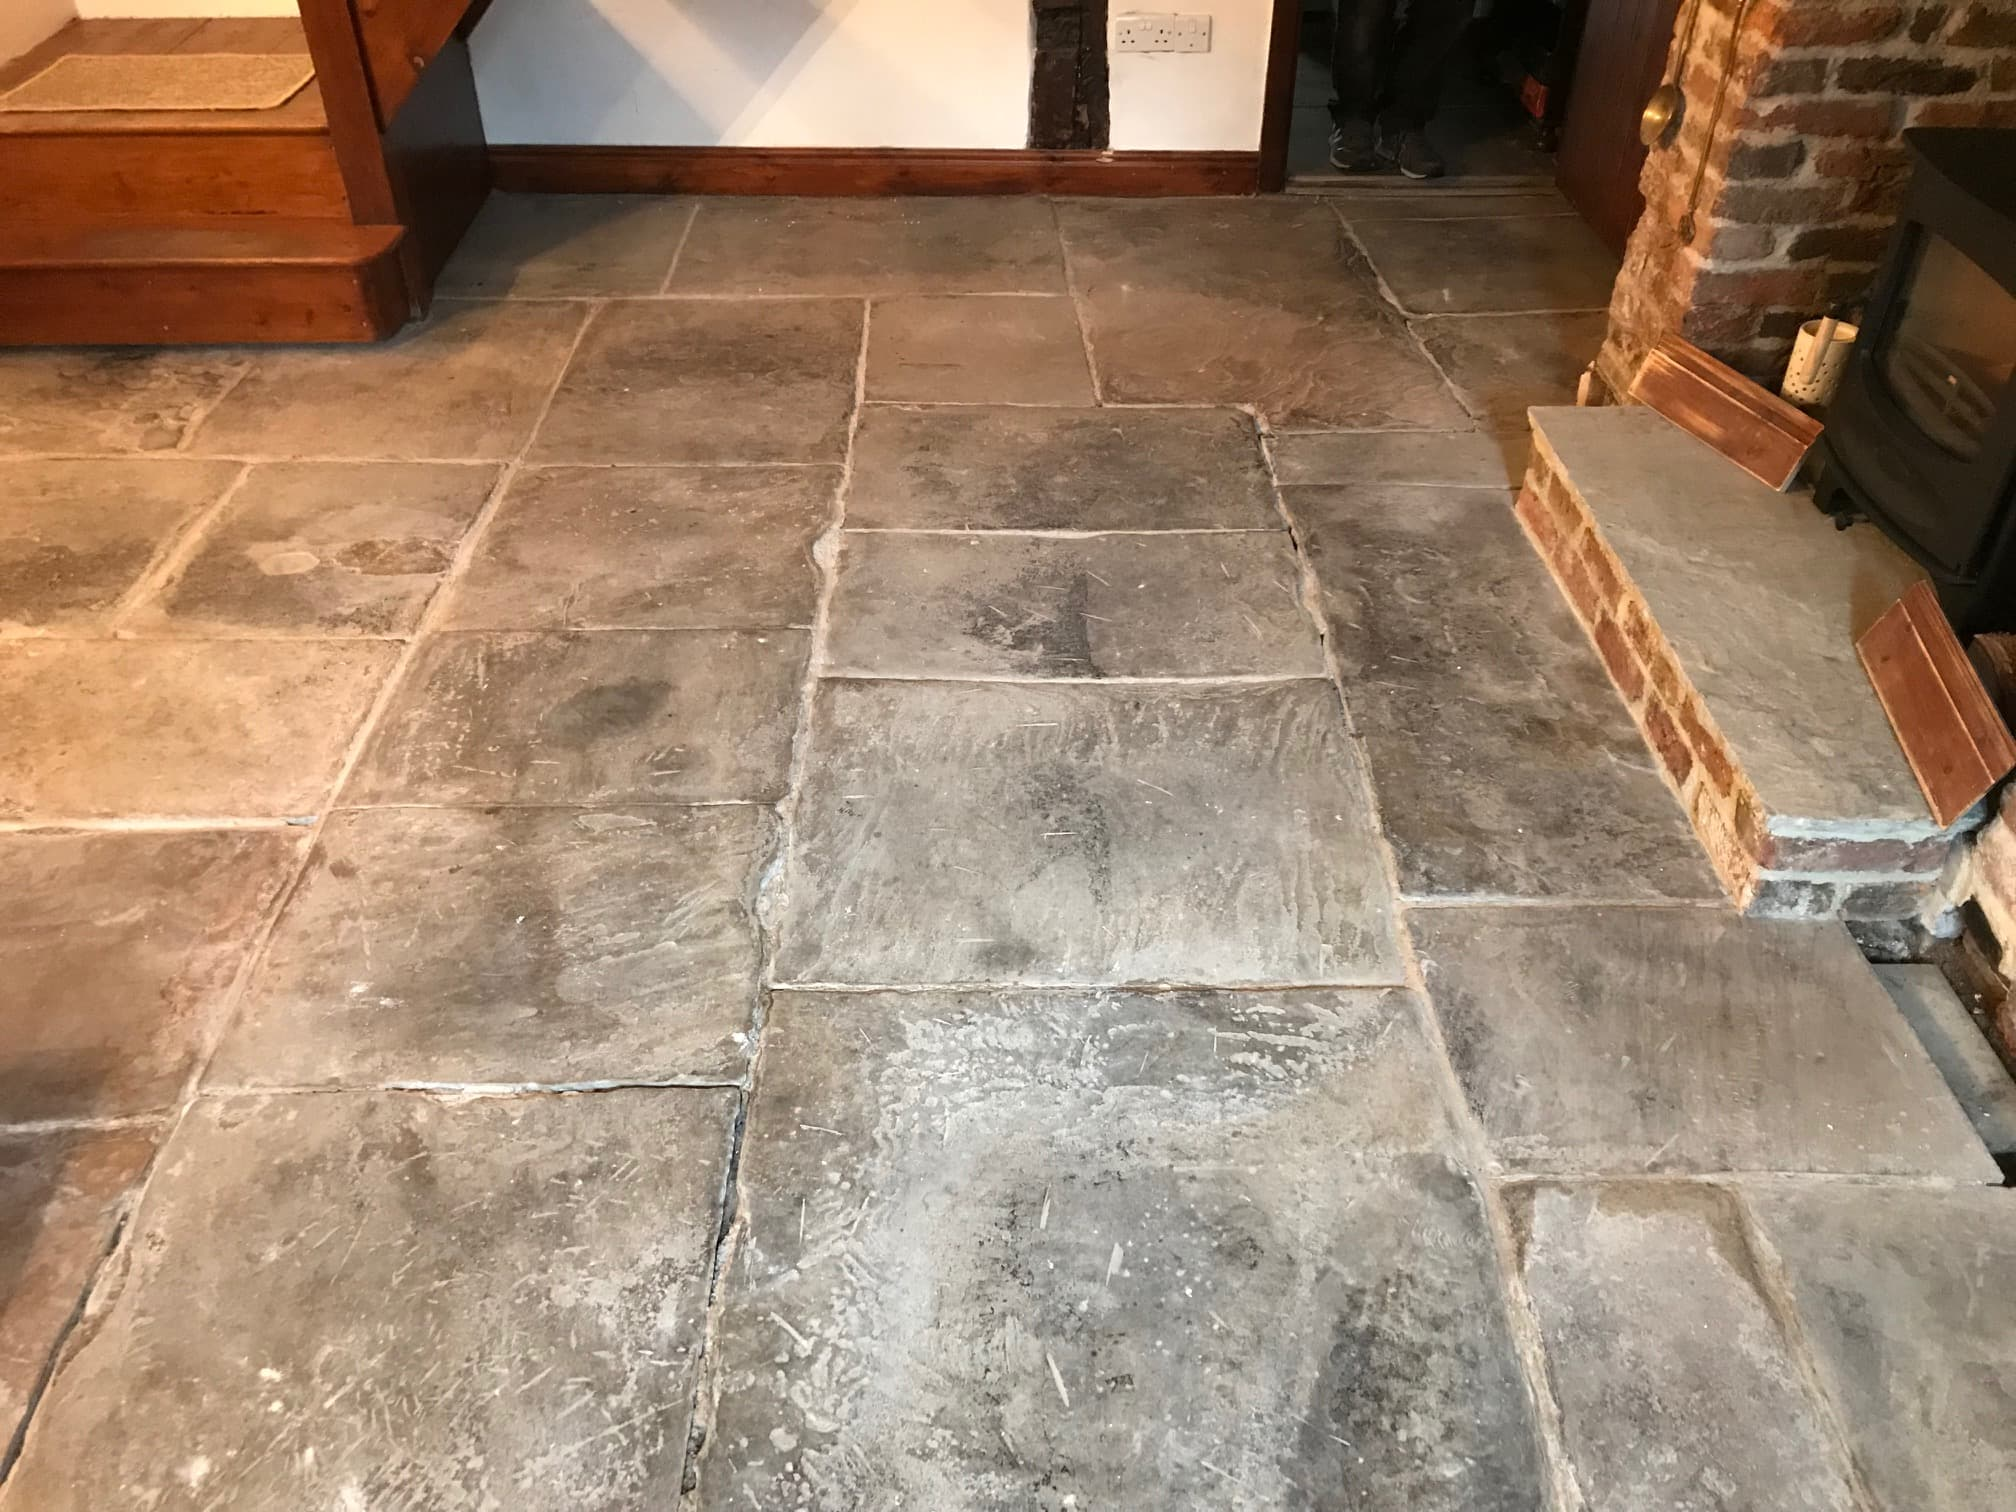 Flagstone-Floor Before Restoration in Whalley